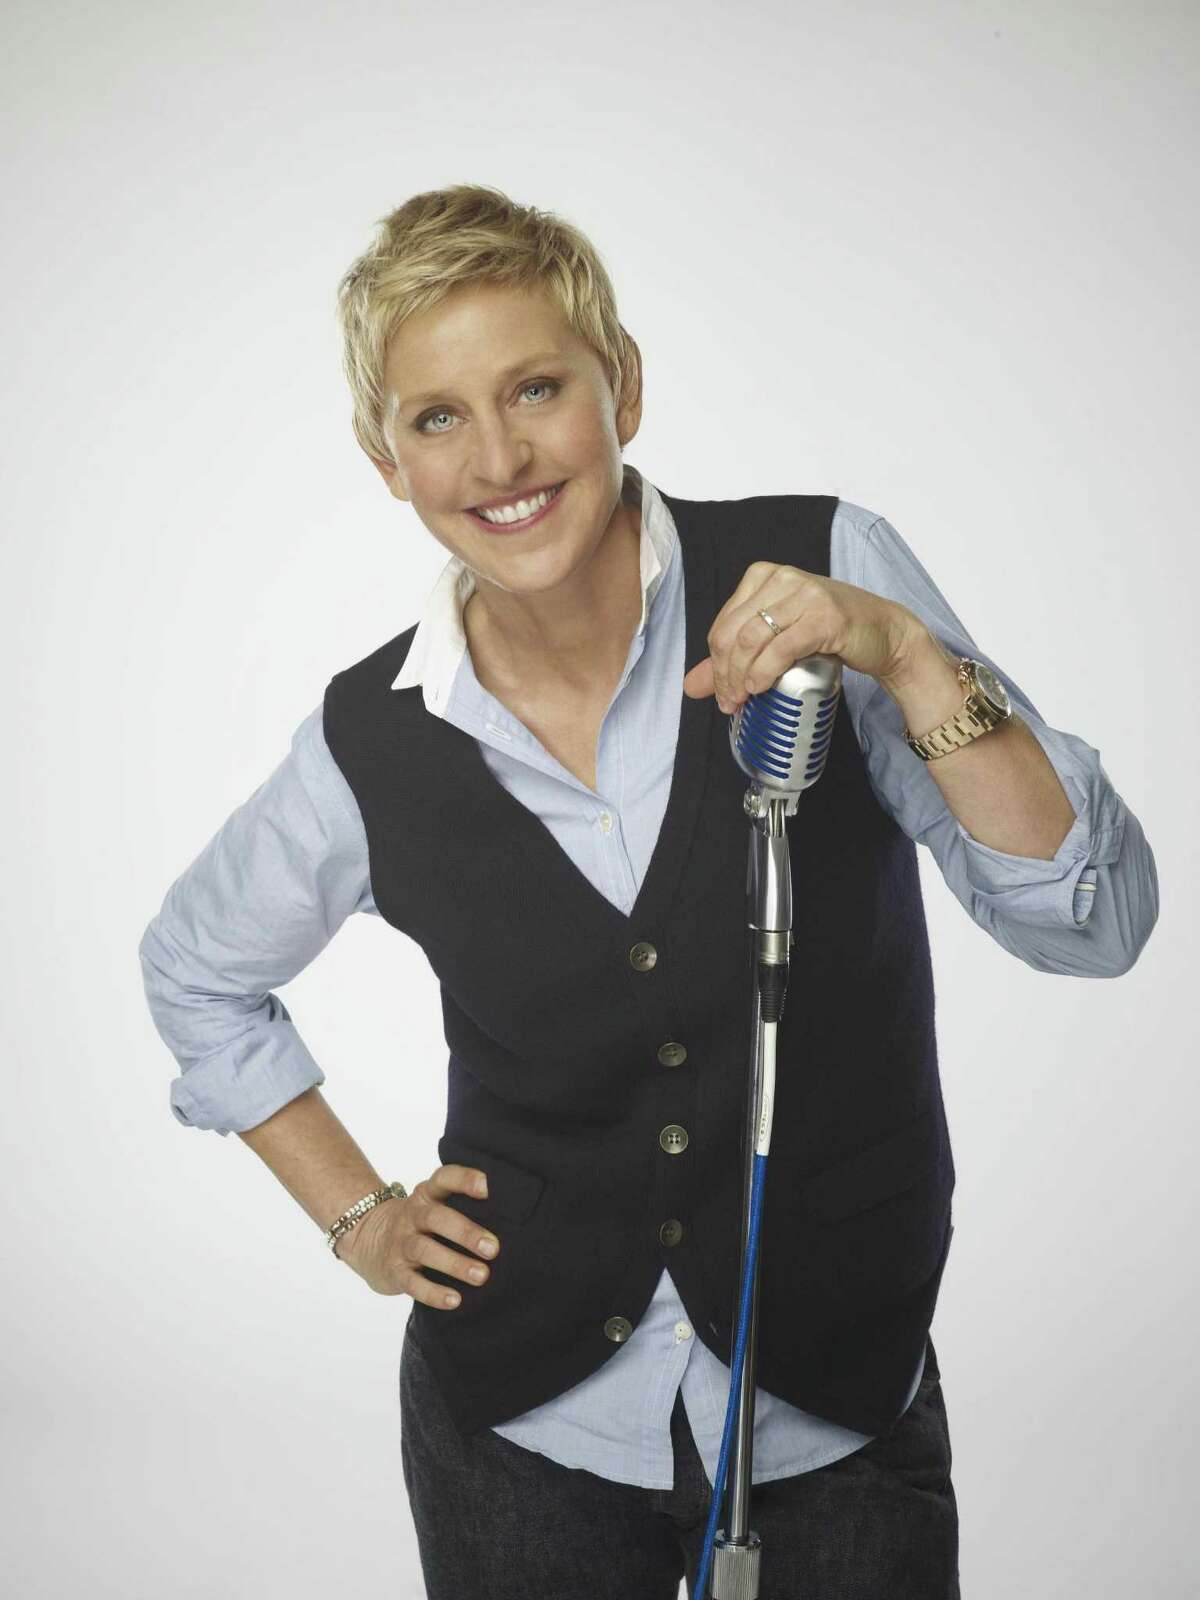 Ellen DeGeneres is working on material for a new stand-up special to be shown on Netflix.